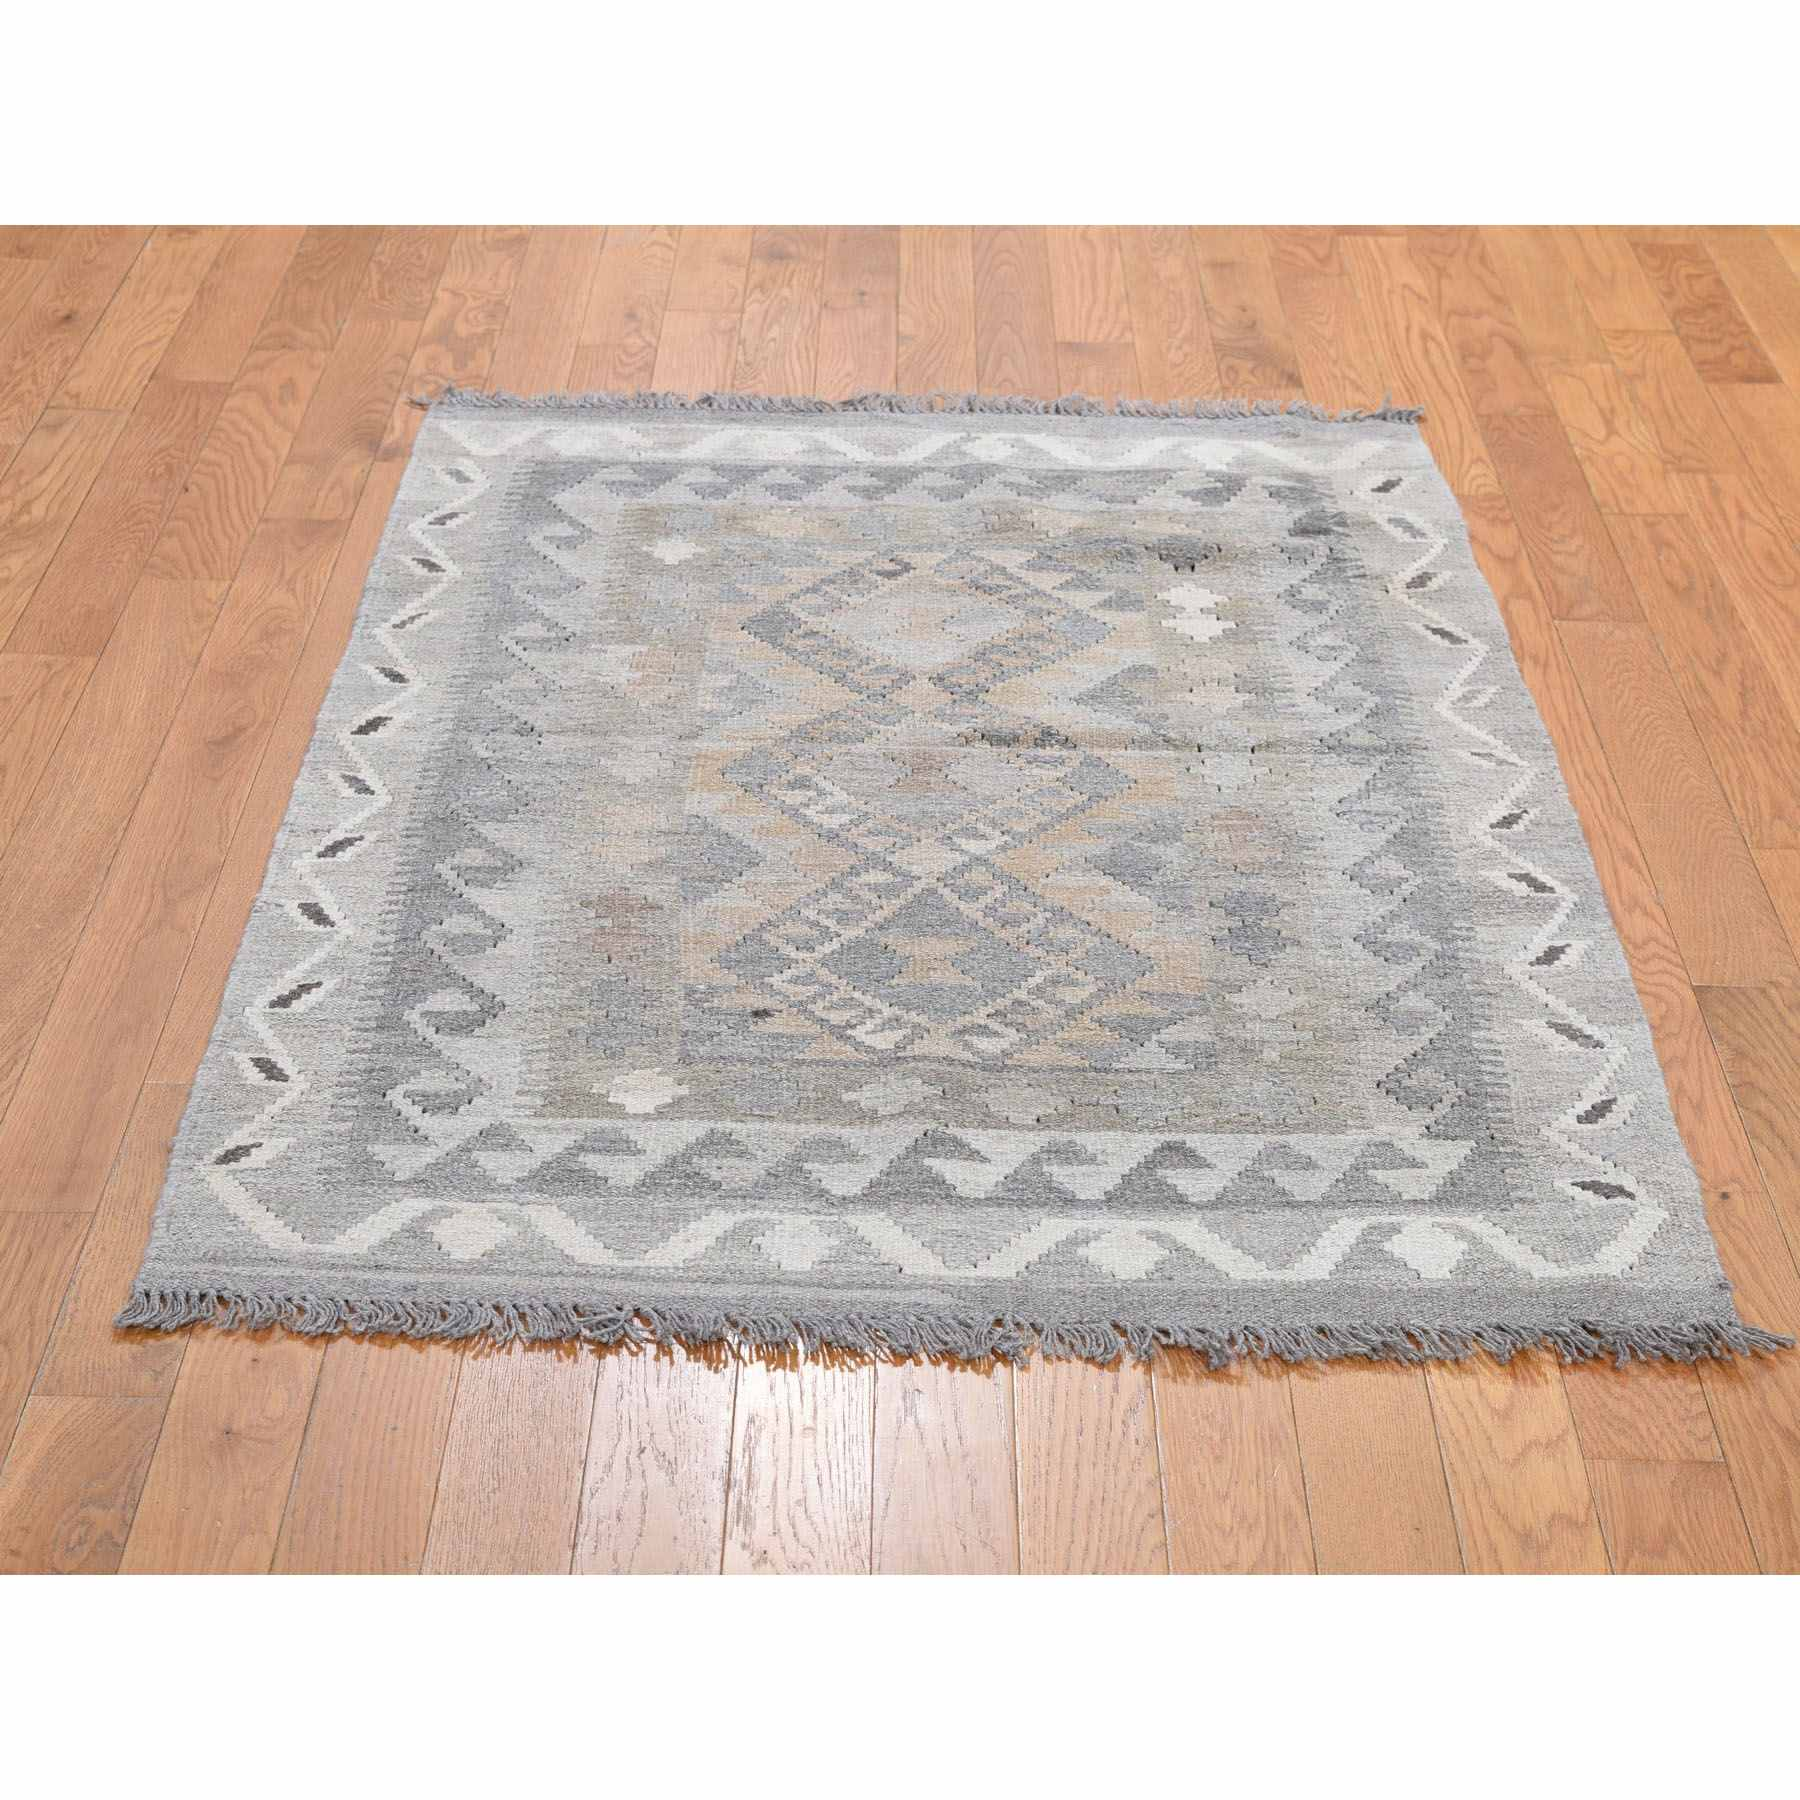 Flat-Weave-Hand-Woven-Rug-237335